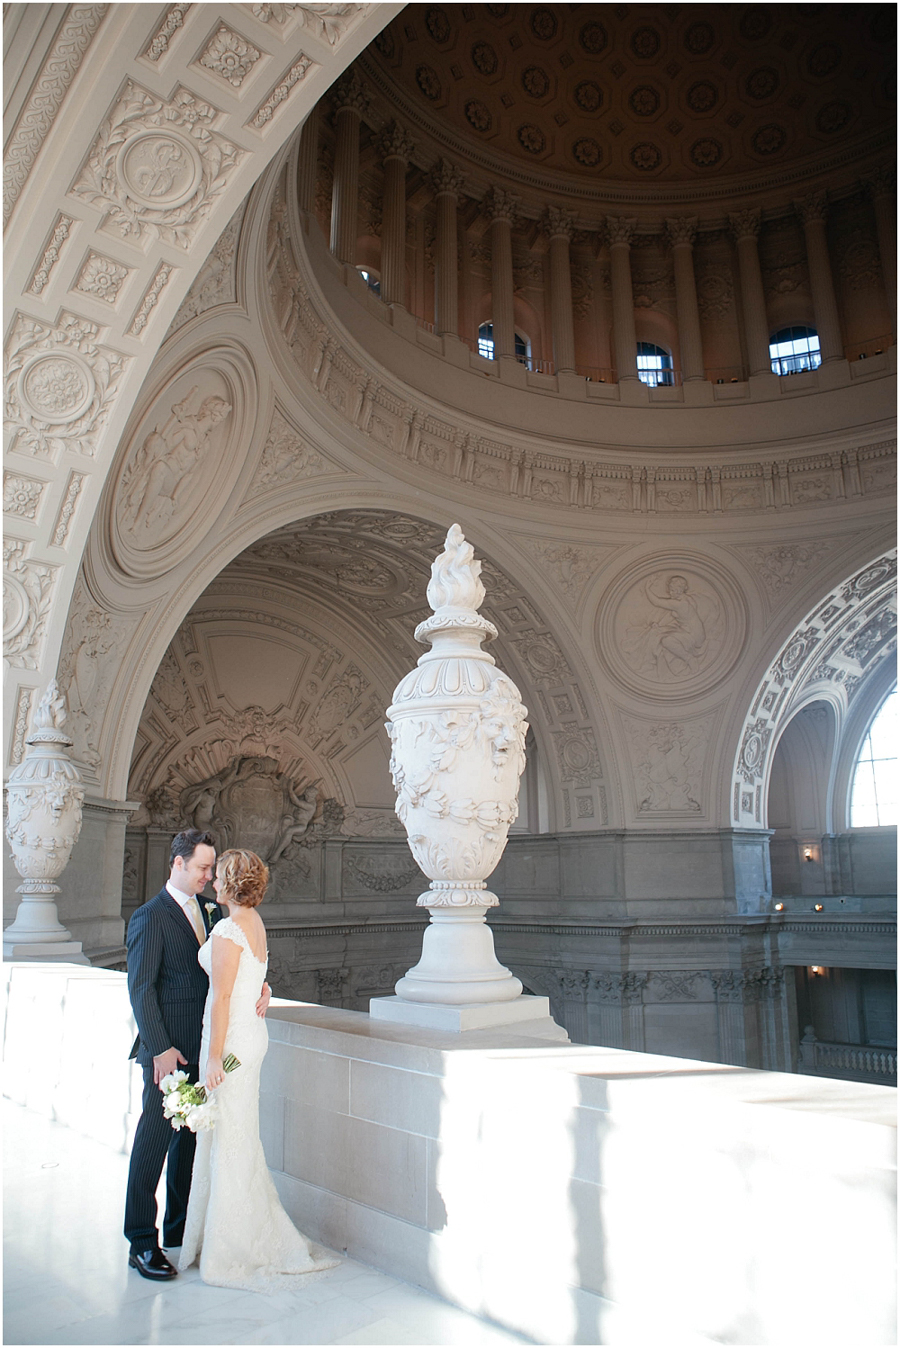 San_Francisco_City_Hall_Wedding_Thackery_57.jpg